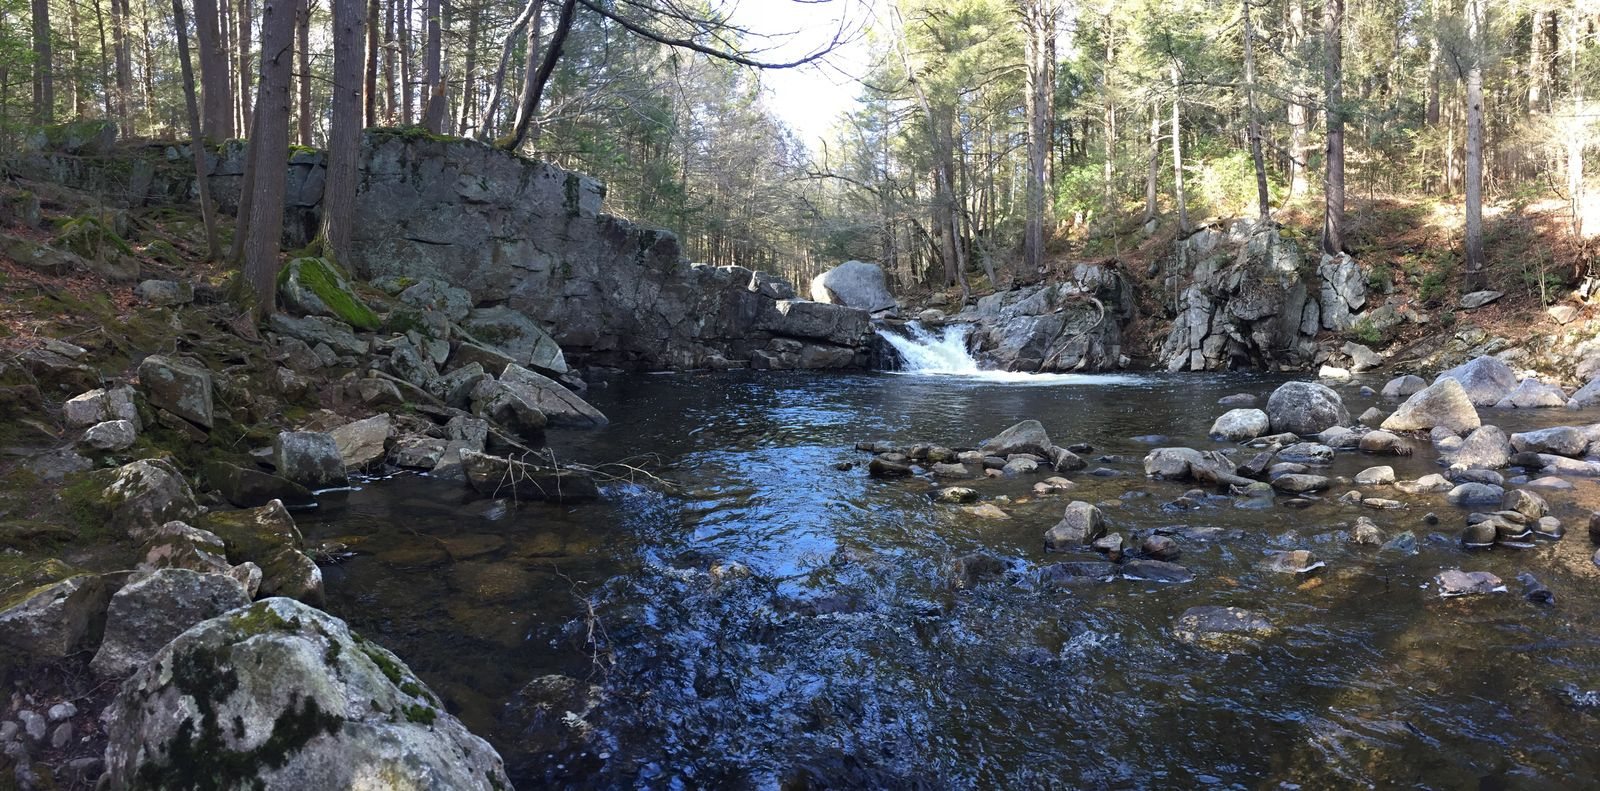 To live. To love. Forest Waterfall River Water_collection Blue And Green Beautiful Beautiful Nature Beautiful Day March 2016 Hello World New England  Massachusetts Taking Photos Enjoying Life No Filter In The Forest Share Your Adventure Adventure